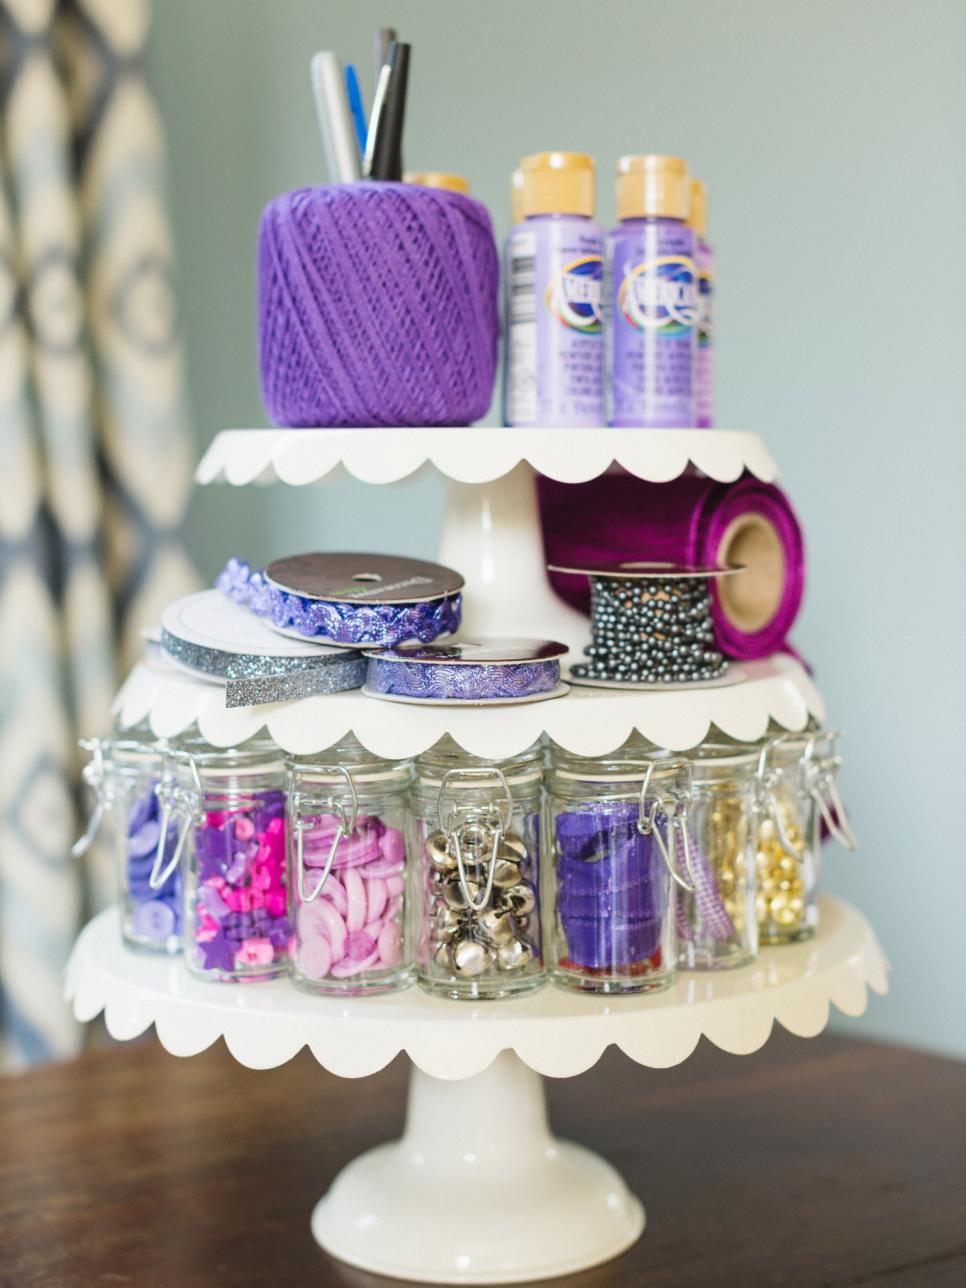 Decorative Cake Stands Creative Uses For Cake Stands Hgtv